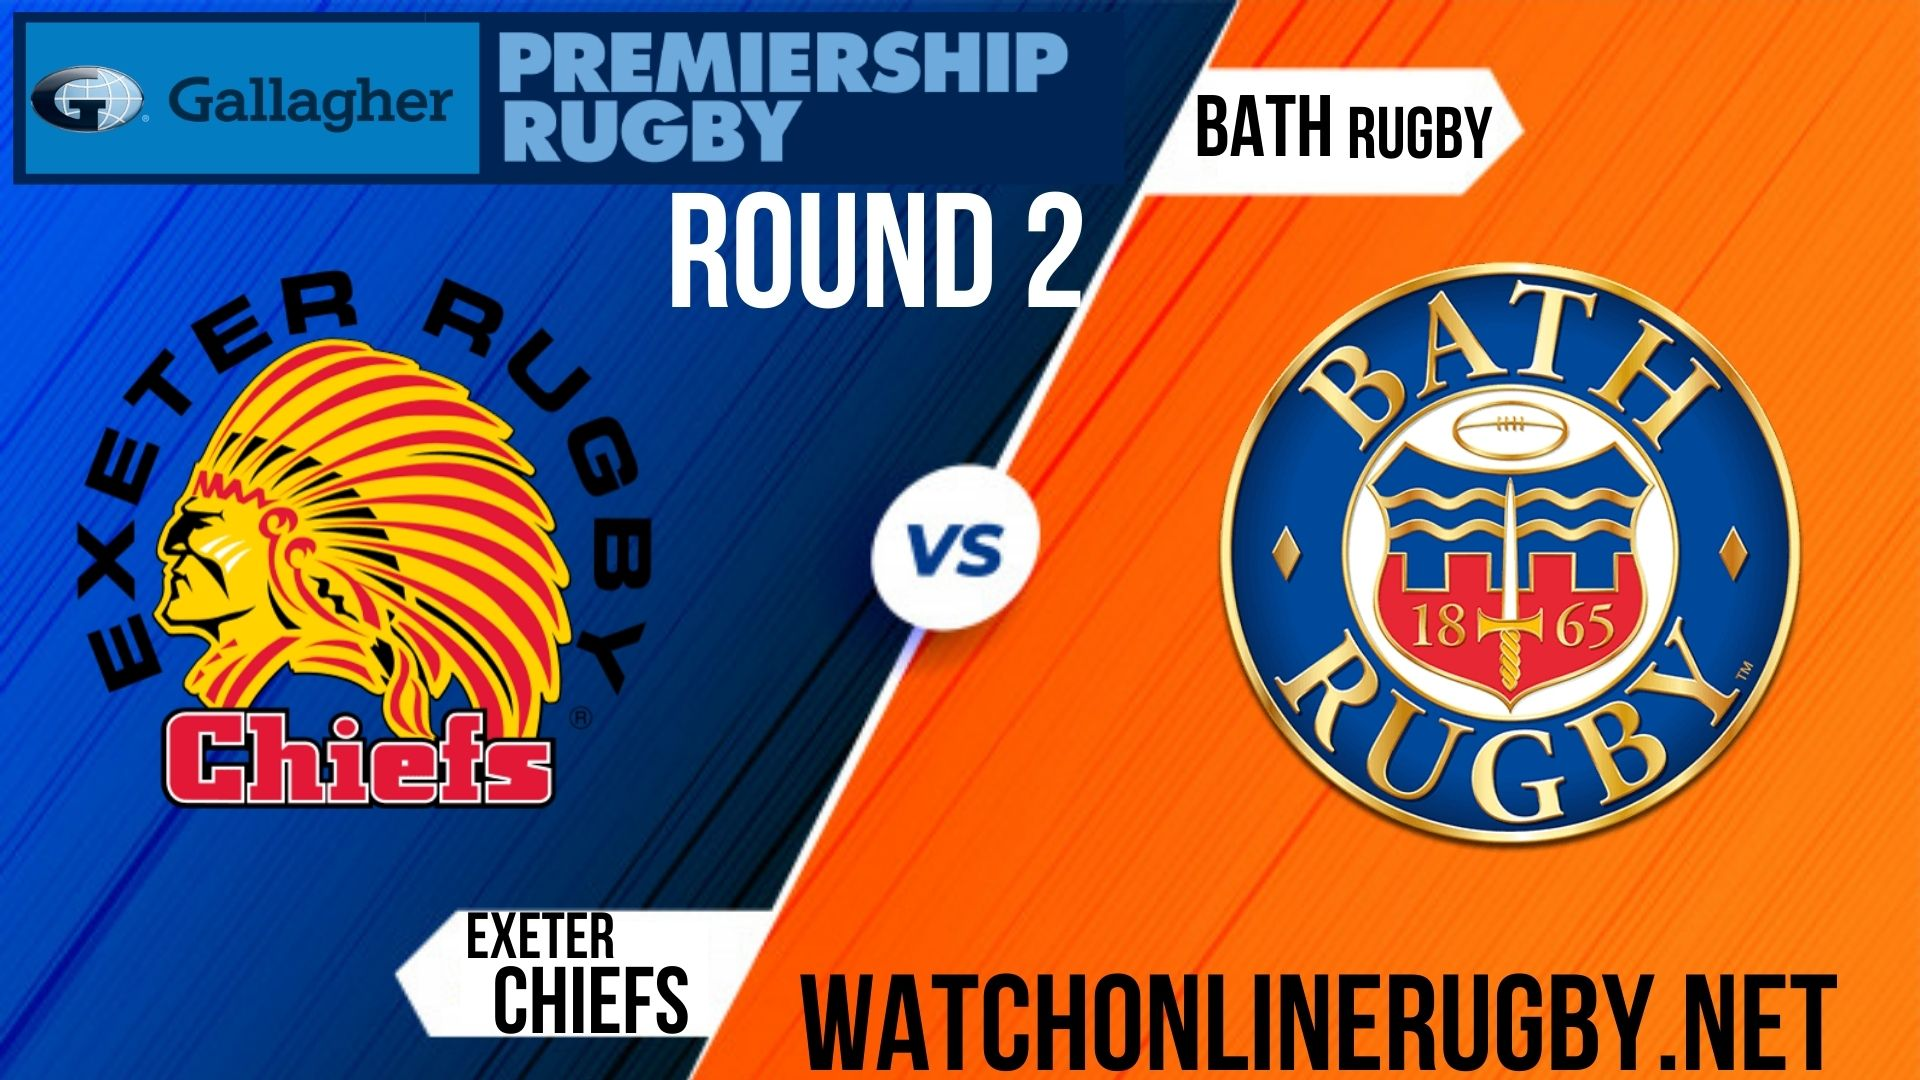 Exeter Chiefs vs Bath Rugby Premiership Rugby 2020 RD 2